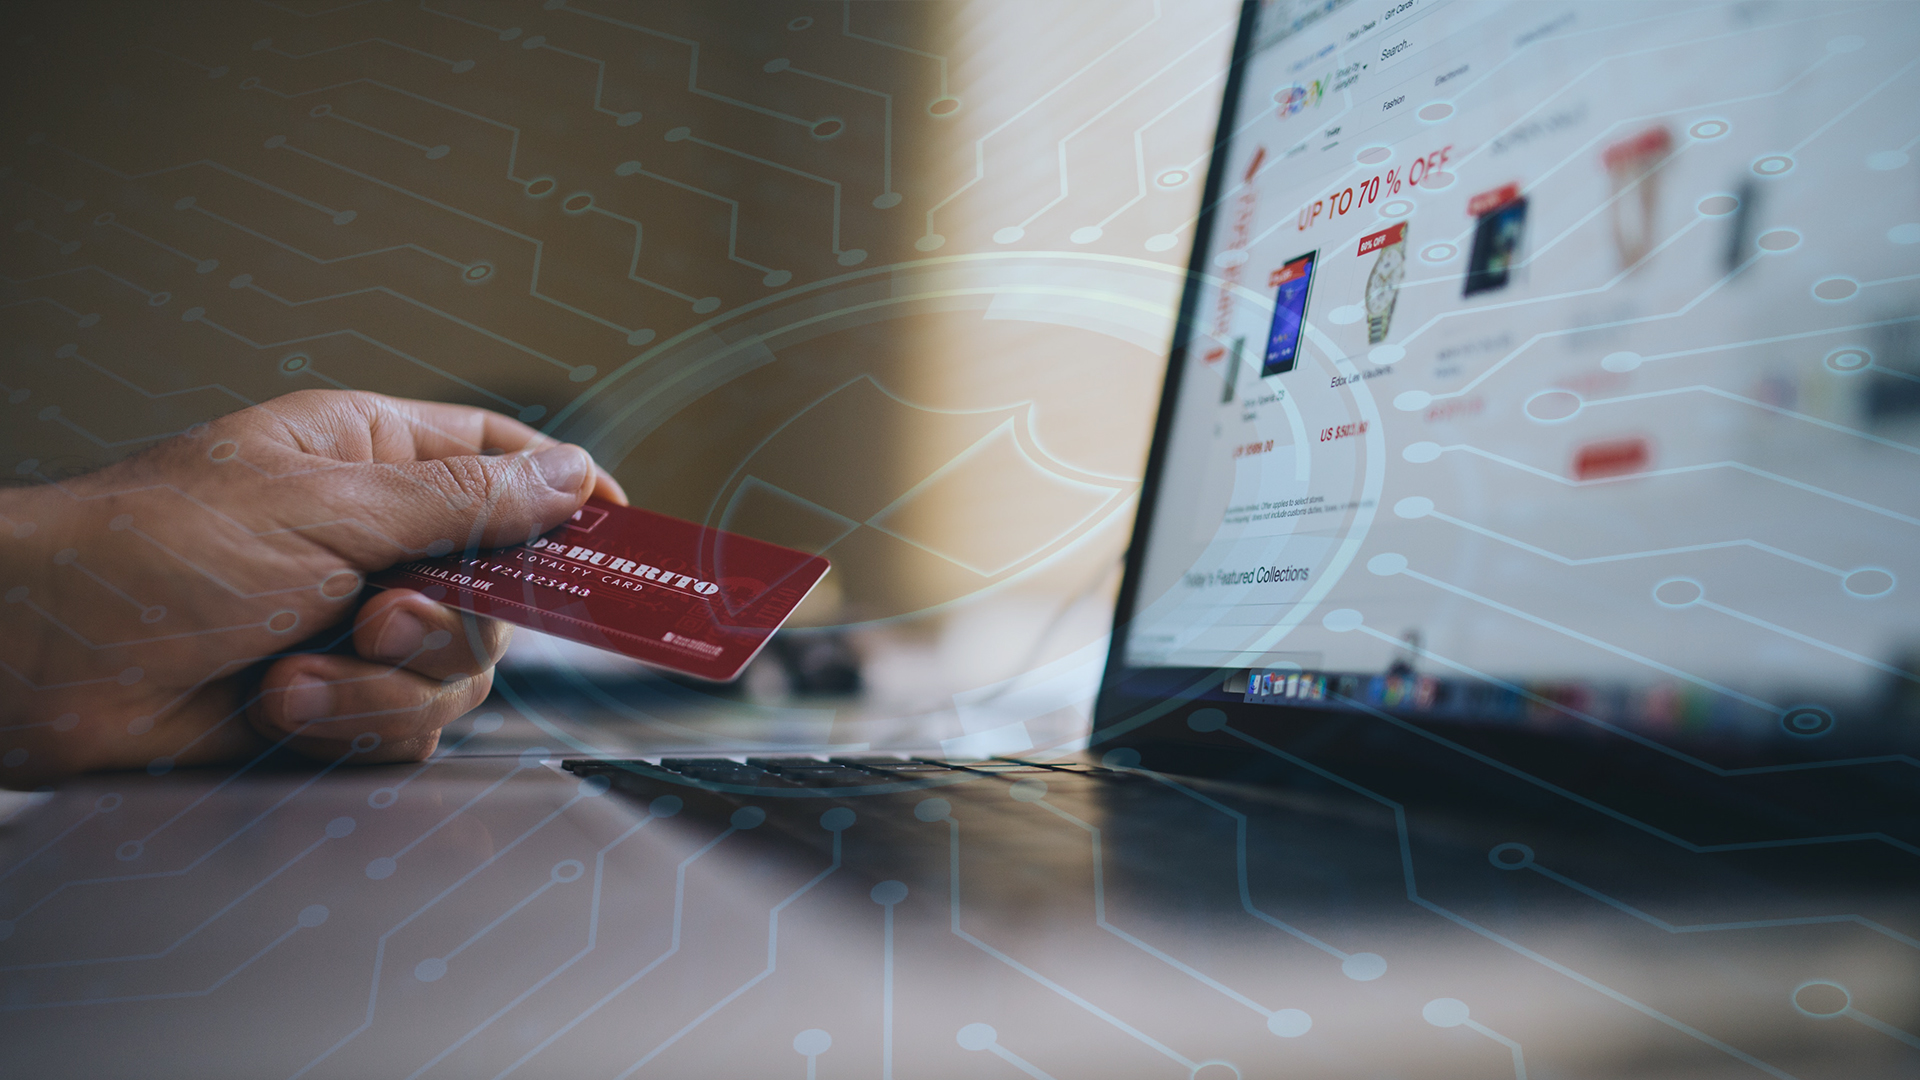 Tips for safer online banking and e-commerce activities